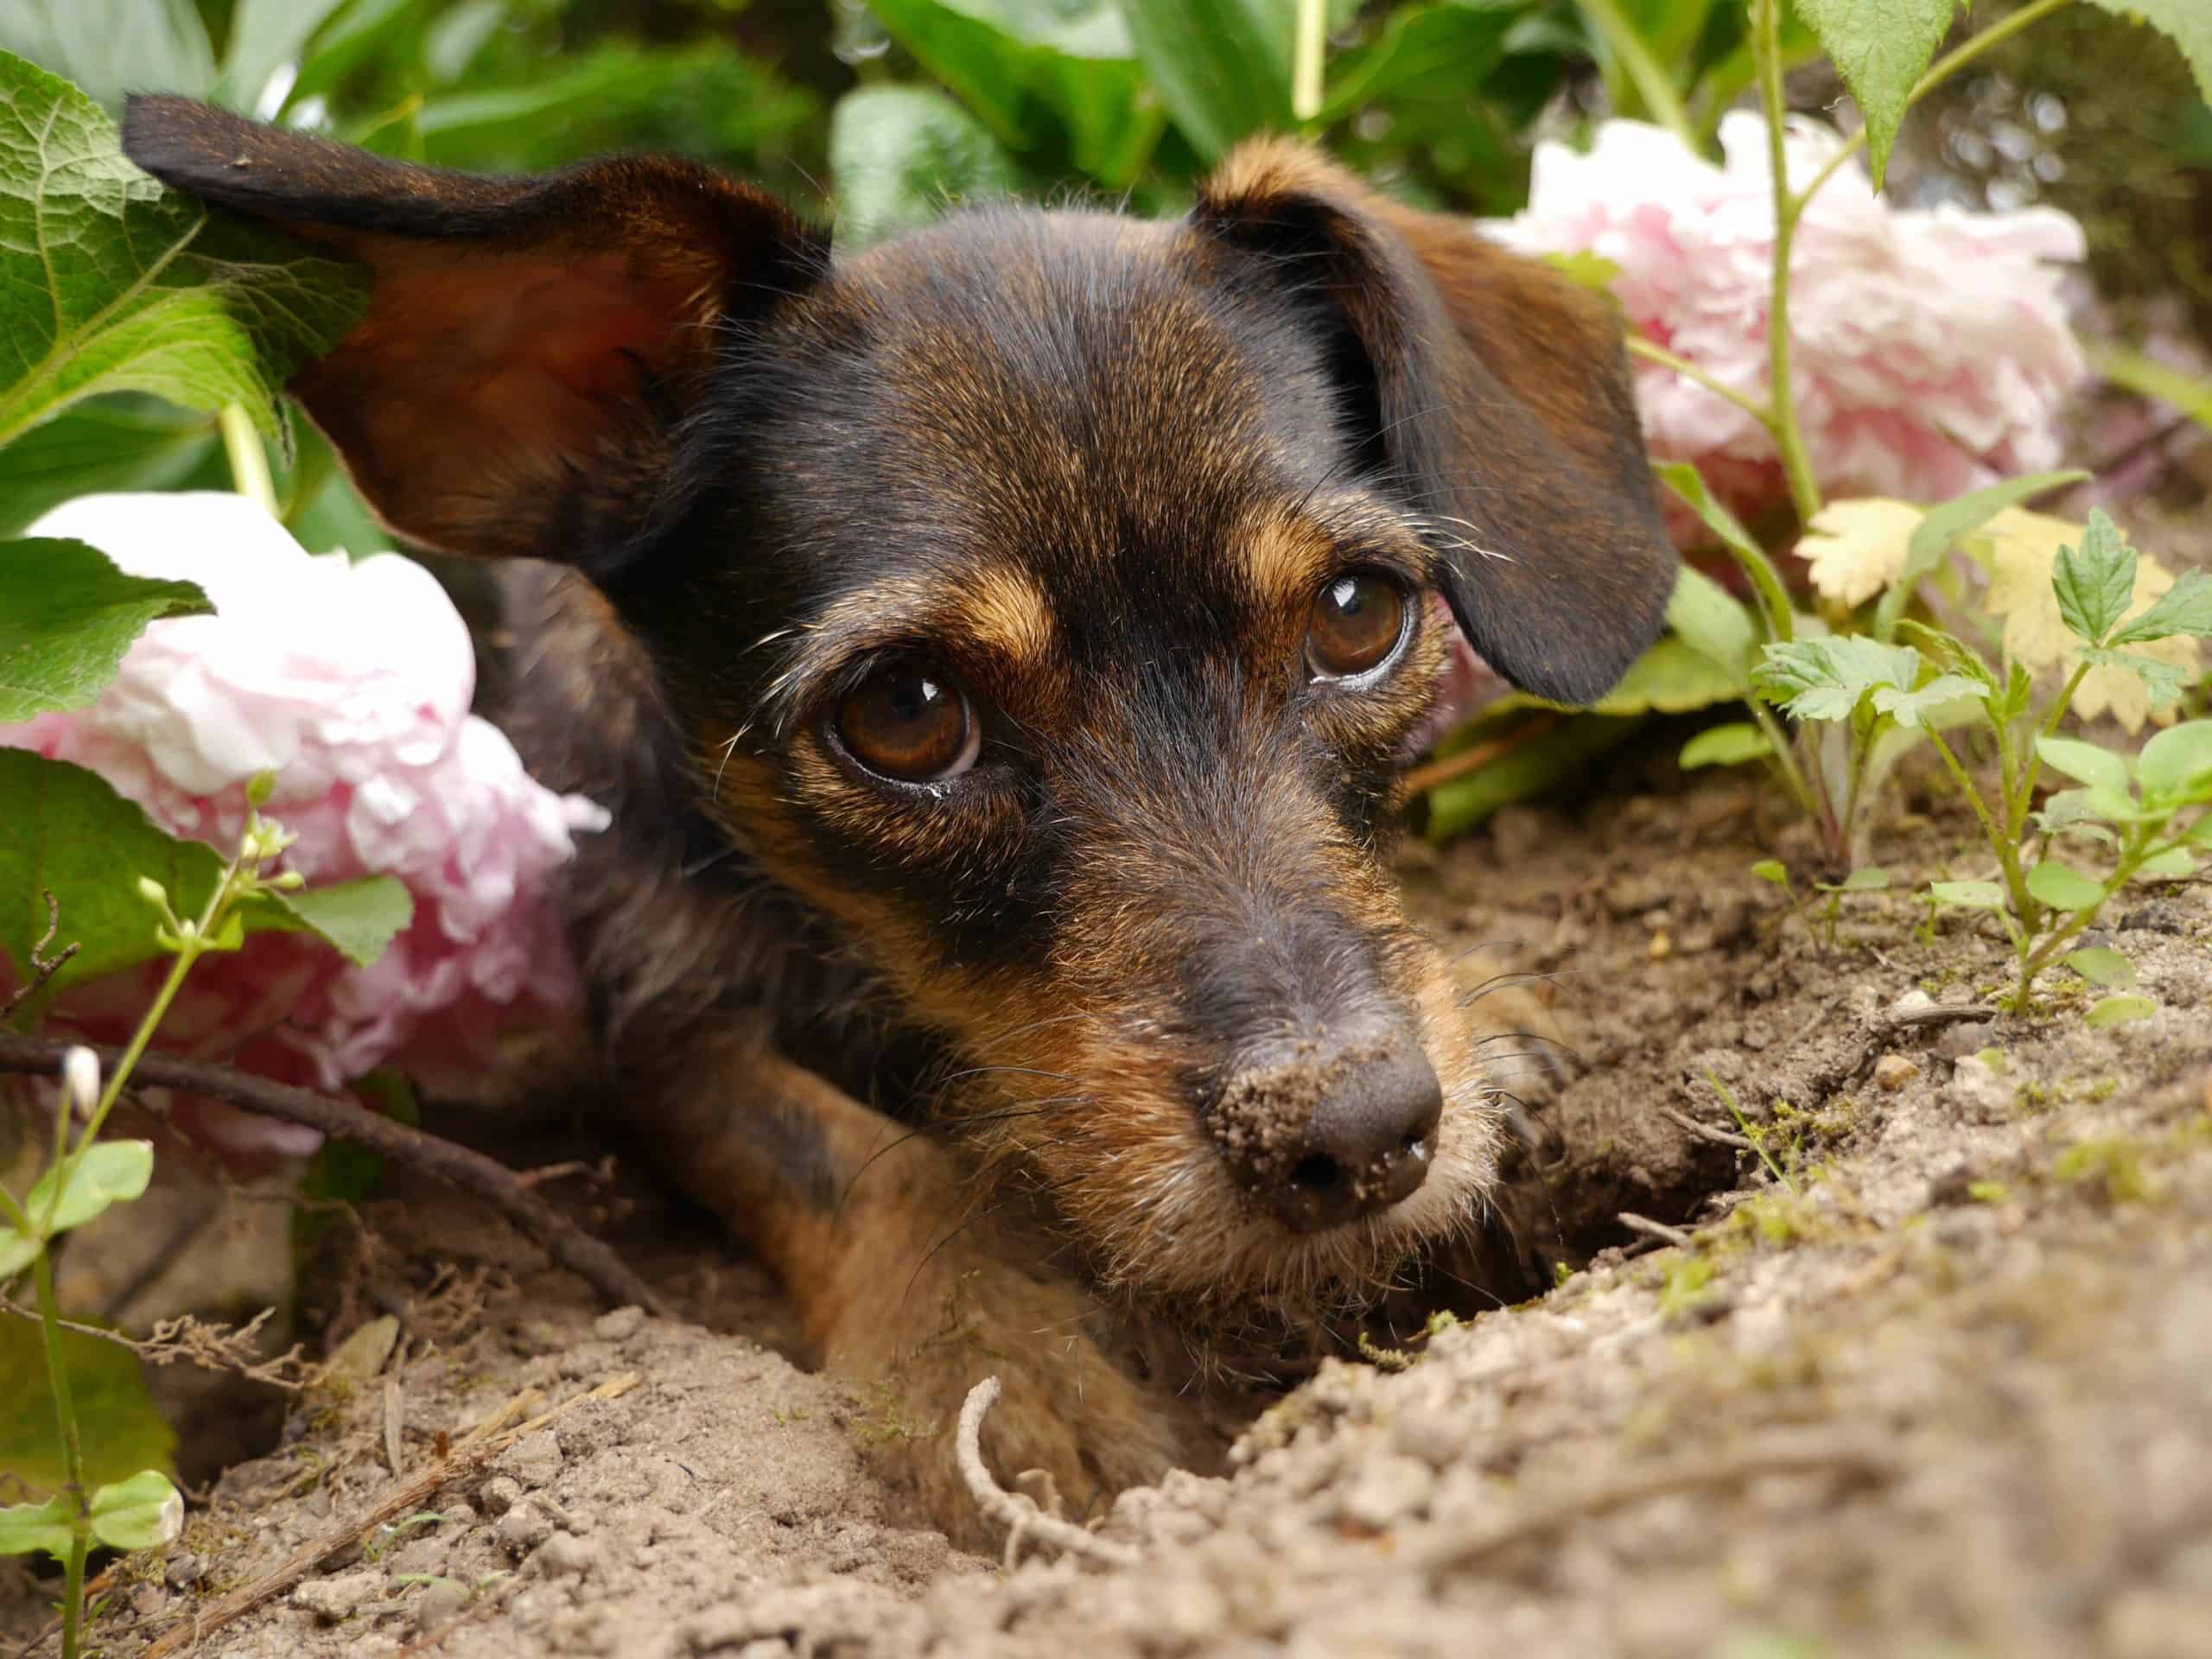 Puppy digs in garden. Some dogs imitate their owners by digging in the garden.